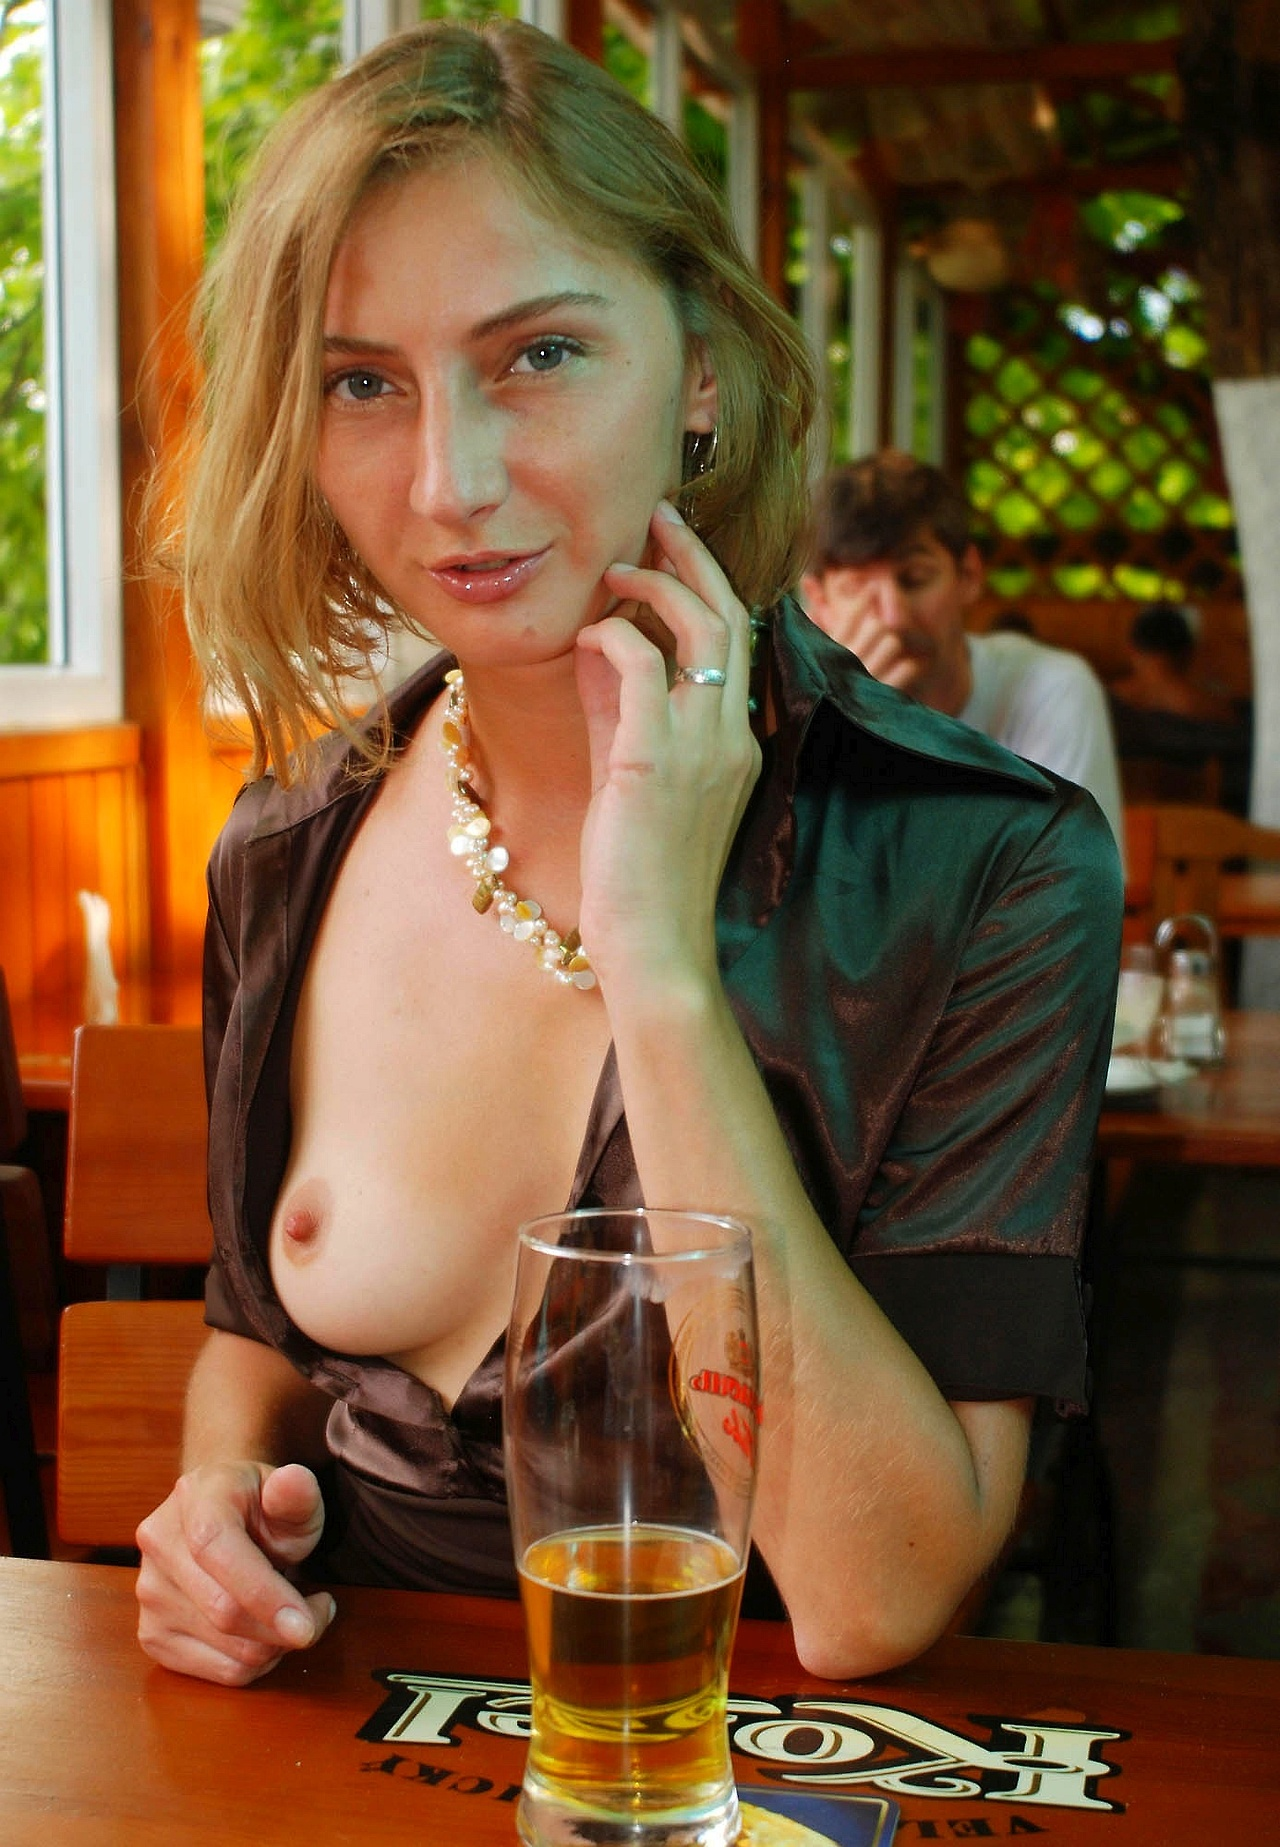 Fill blank? Girl naked at restraunt